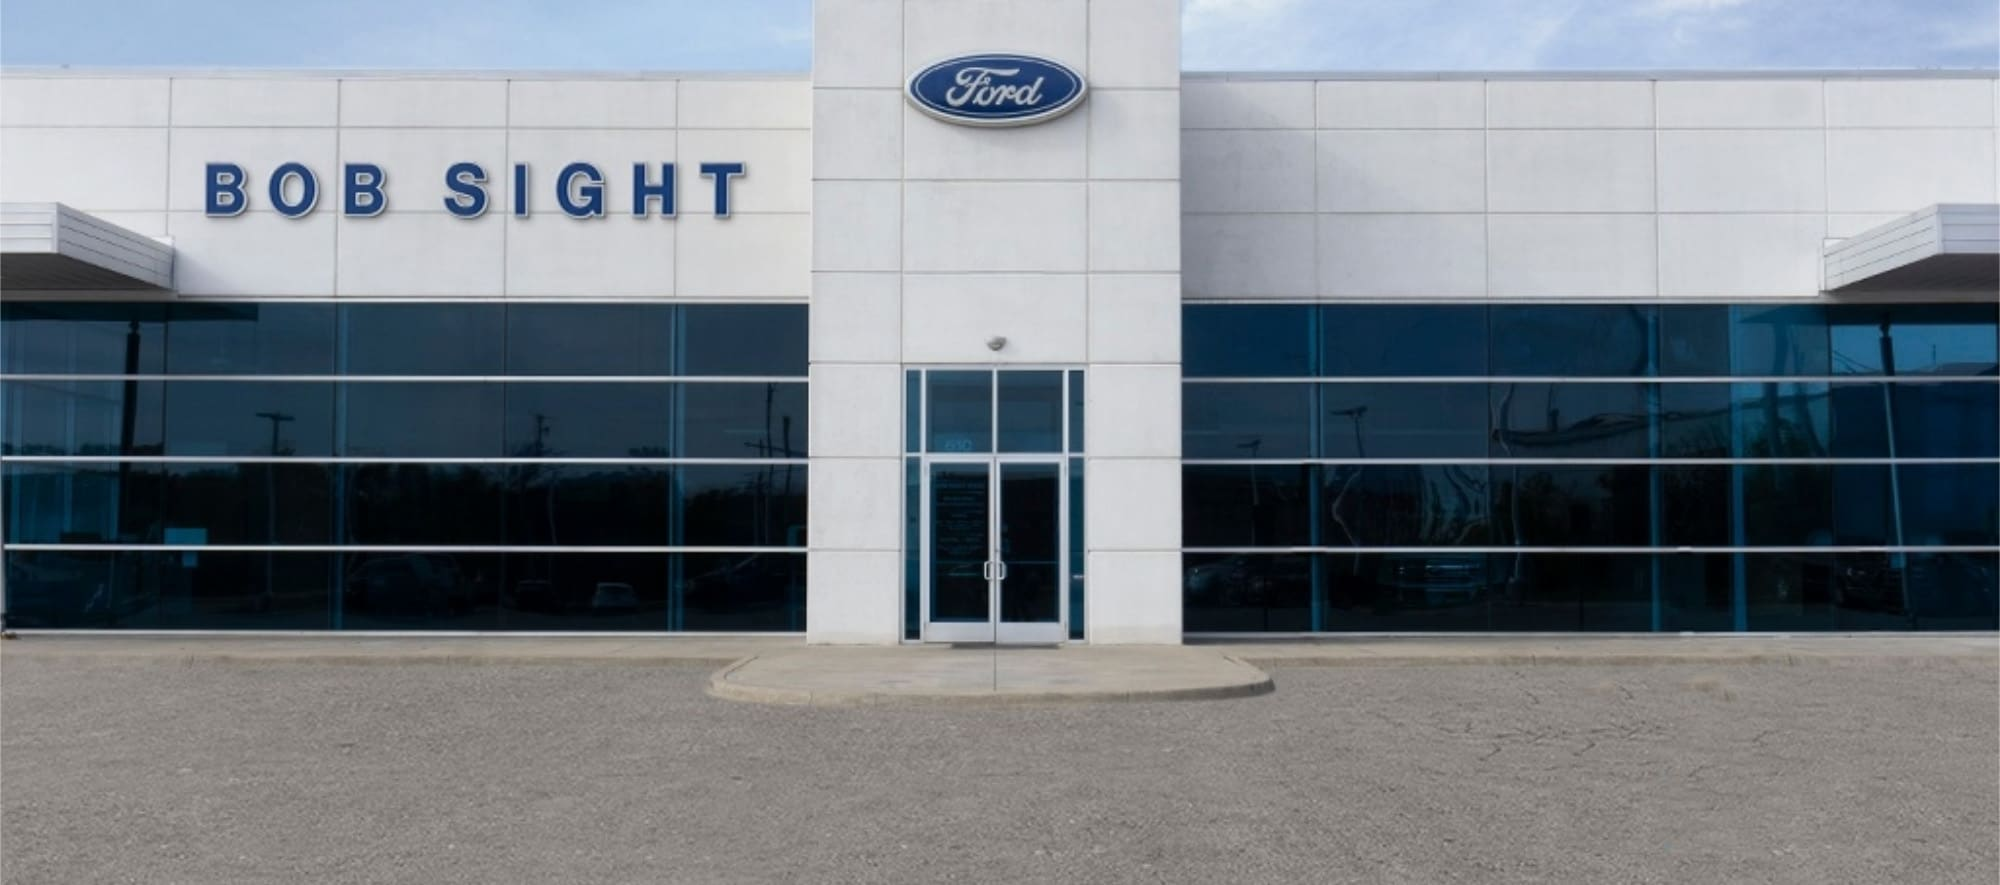 Used 2017 Nissan Rogue For Sale at Bob Sight Ford Inc  | VIN